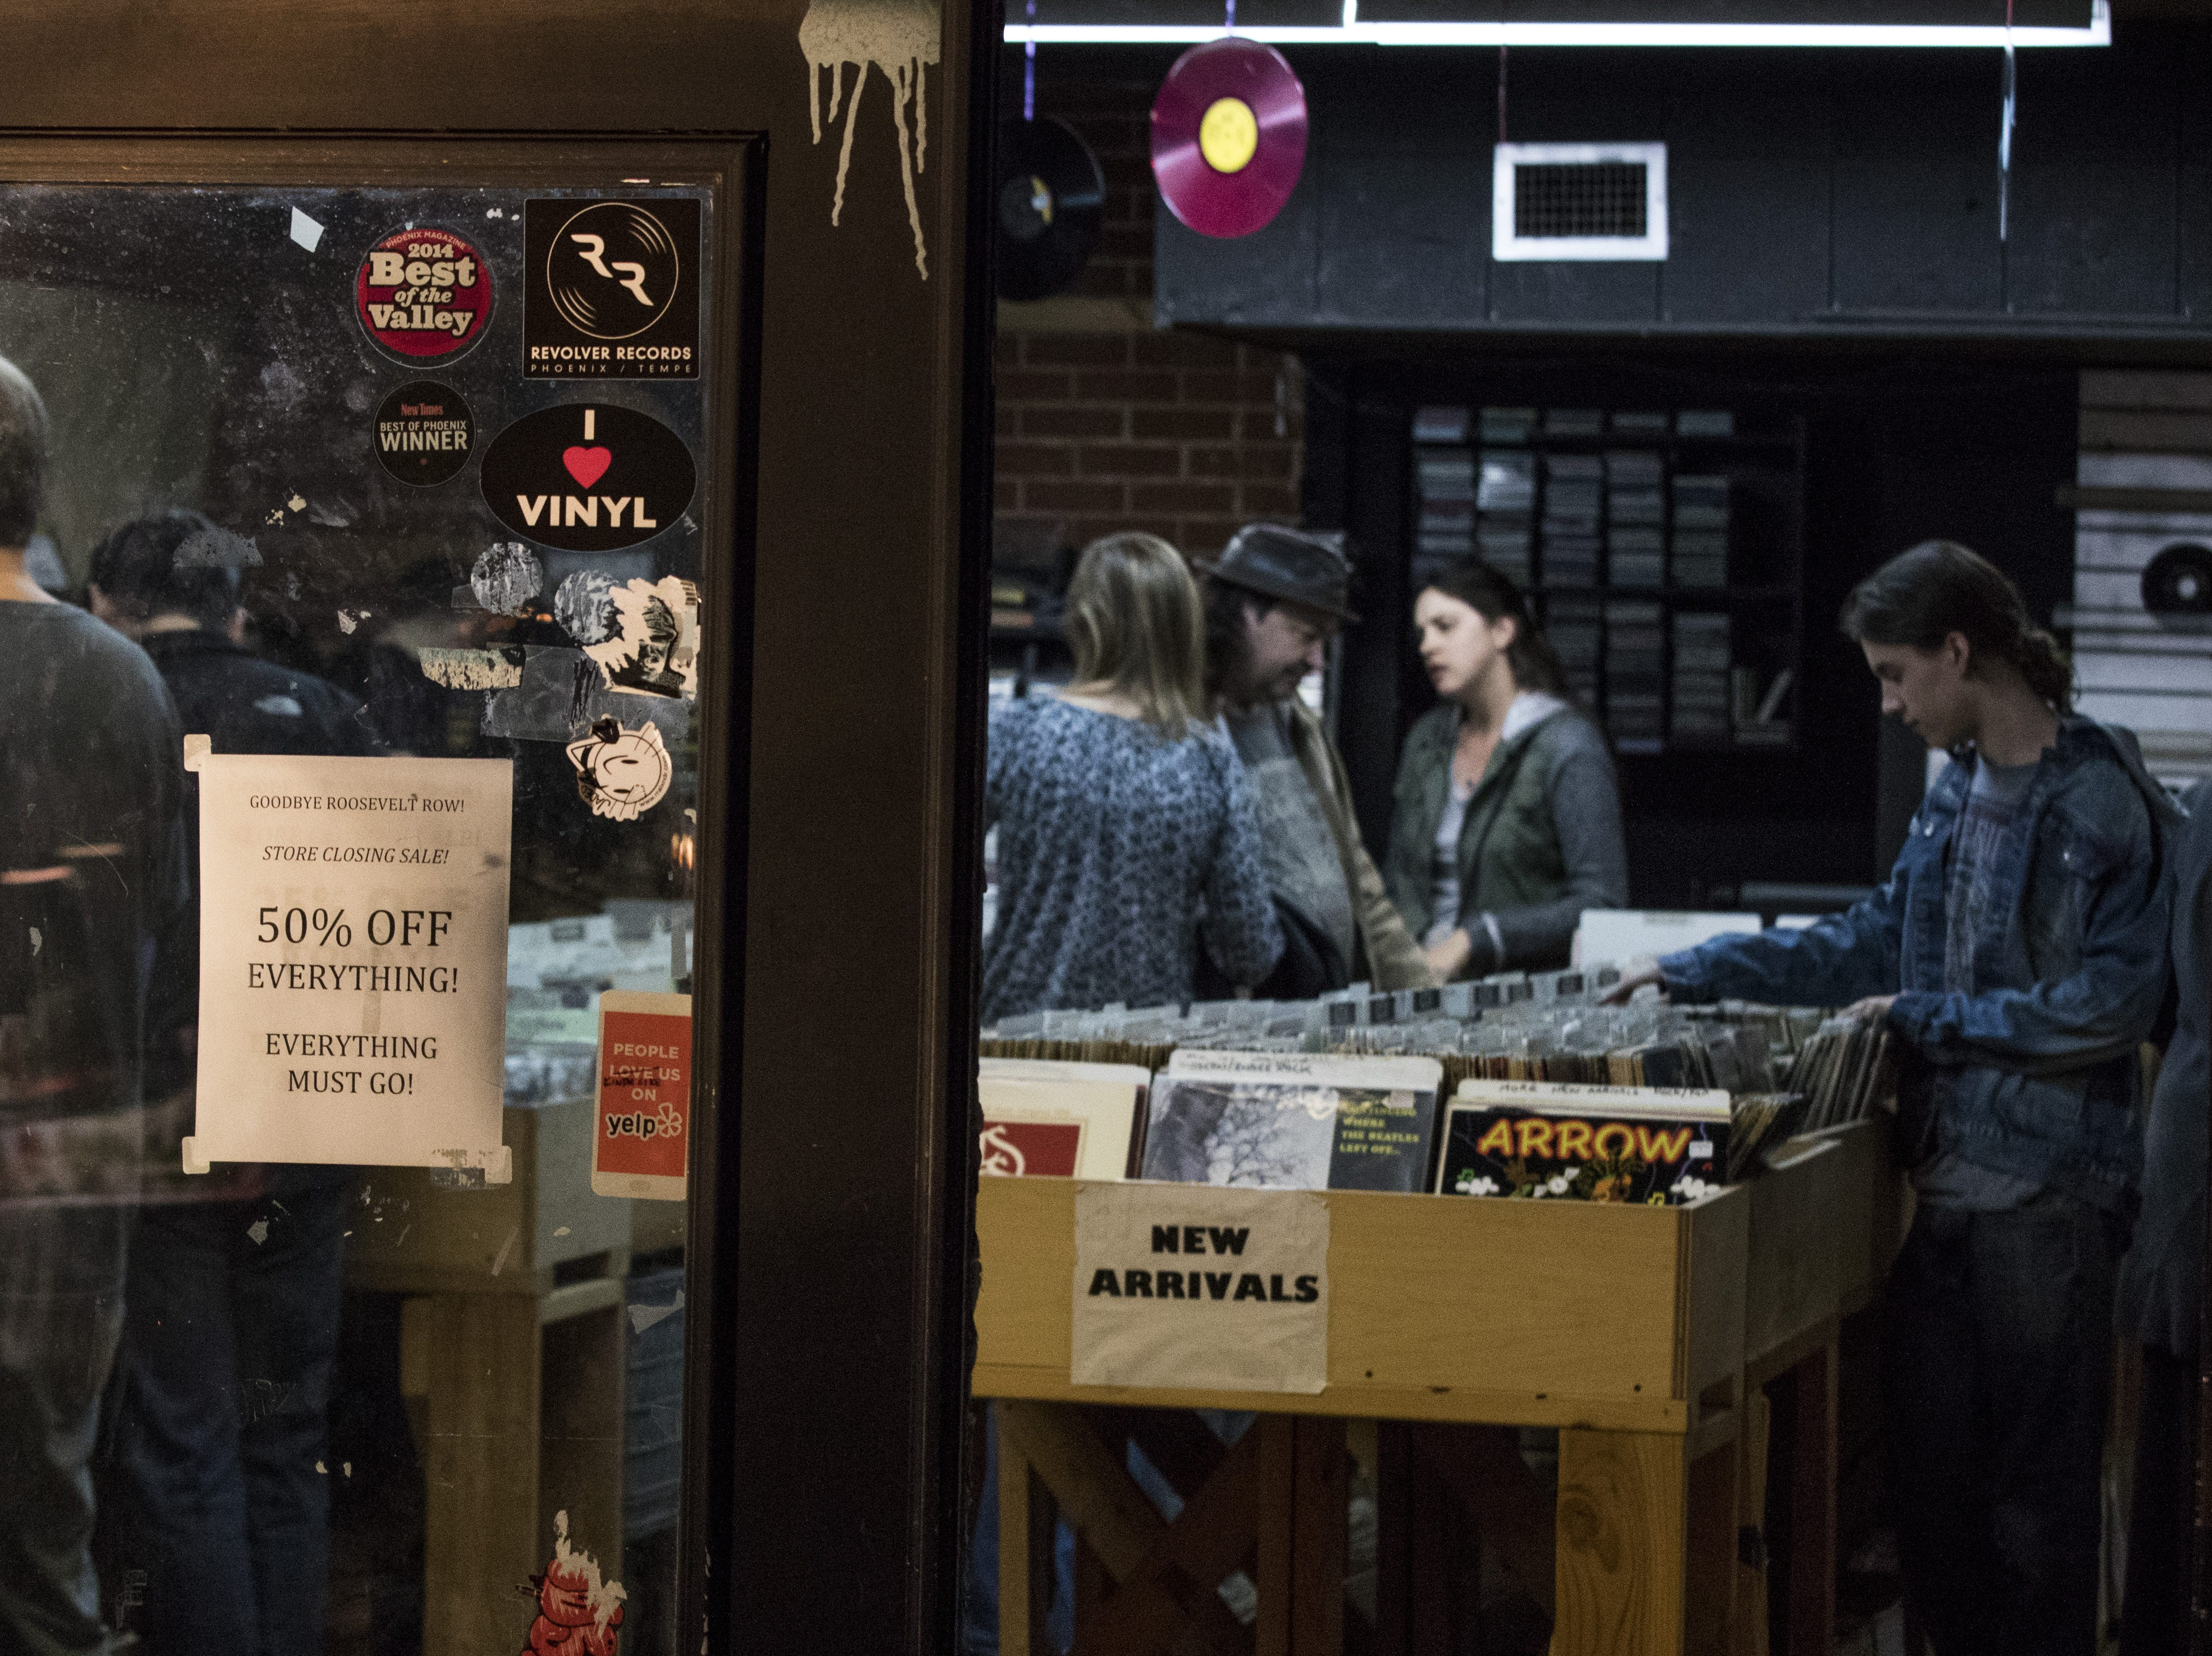 During First Friday, music lovers sort through albums at Revolver Records in downtown Phoenix.